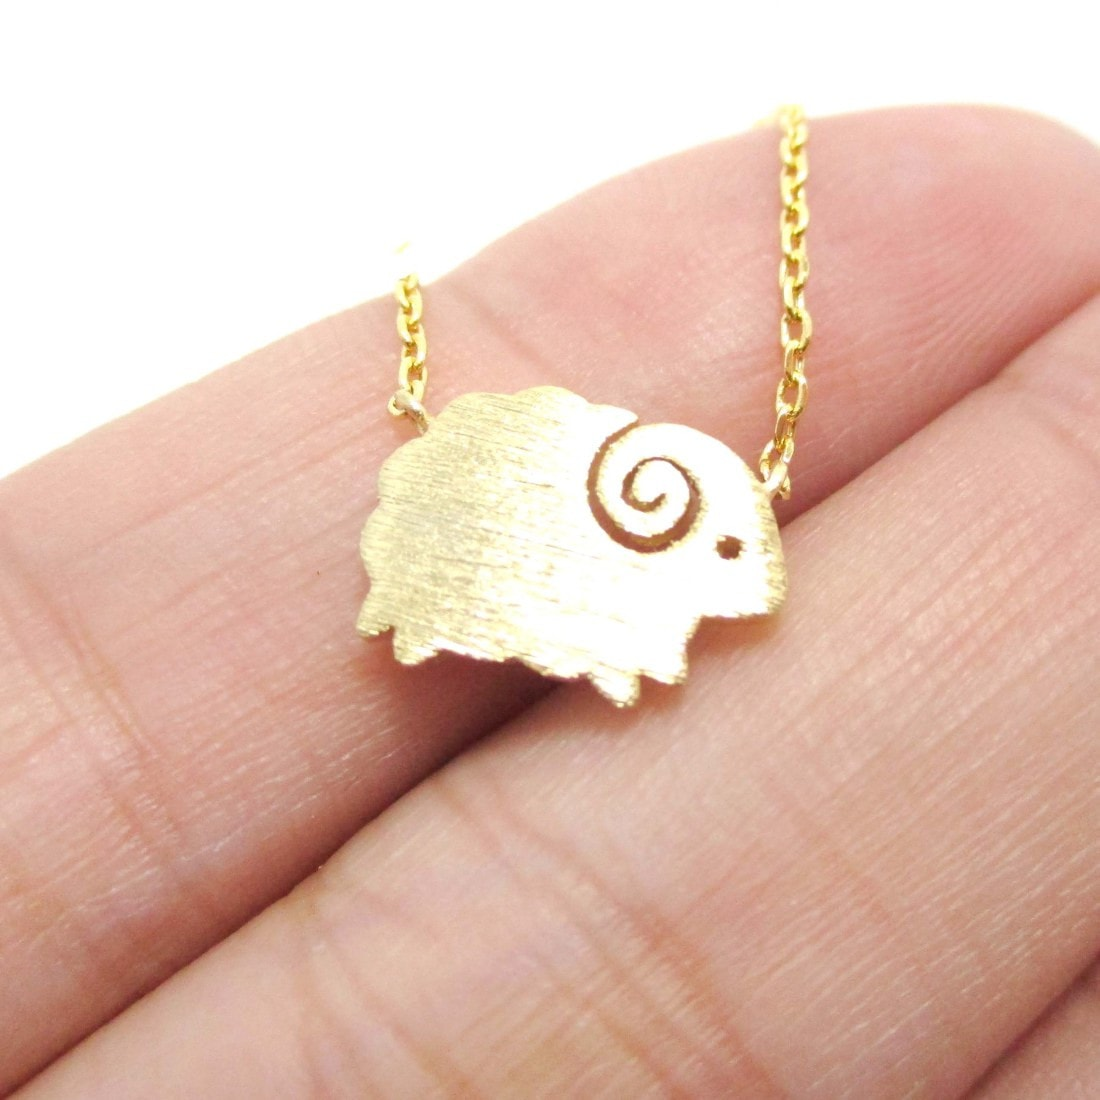 Mountain Goat Ram Sheep Shaped Charm Necklace in Gold